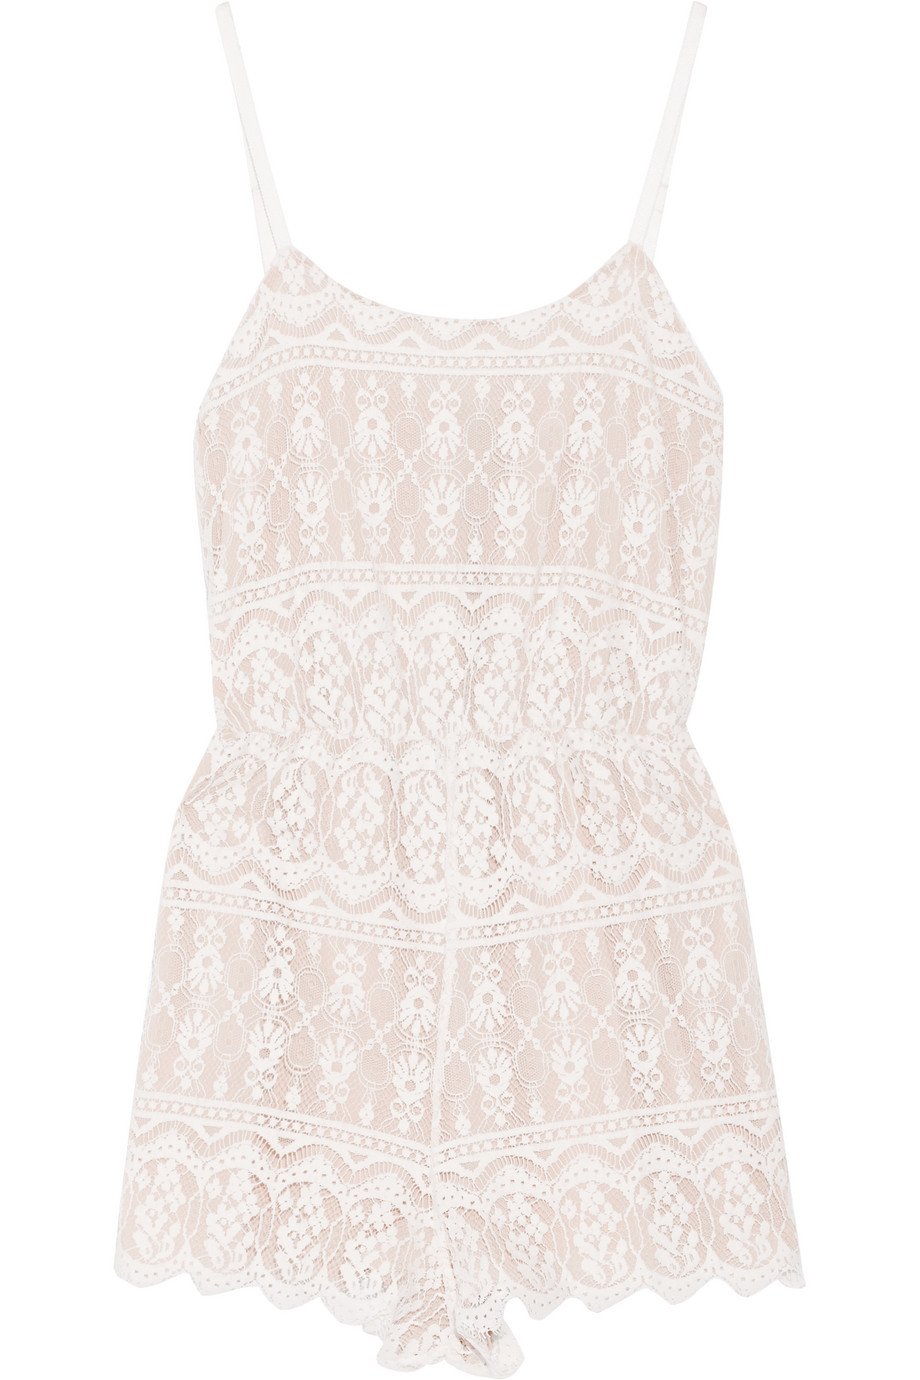 Alice + Olivia Cassia Lace Playsuit, White, Women's, Size: 2